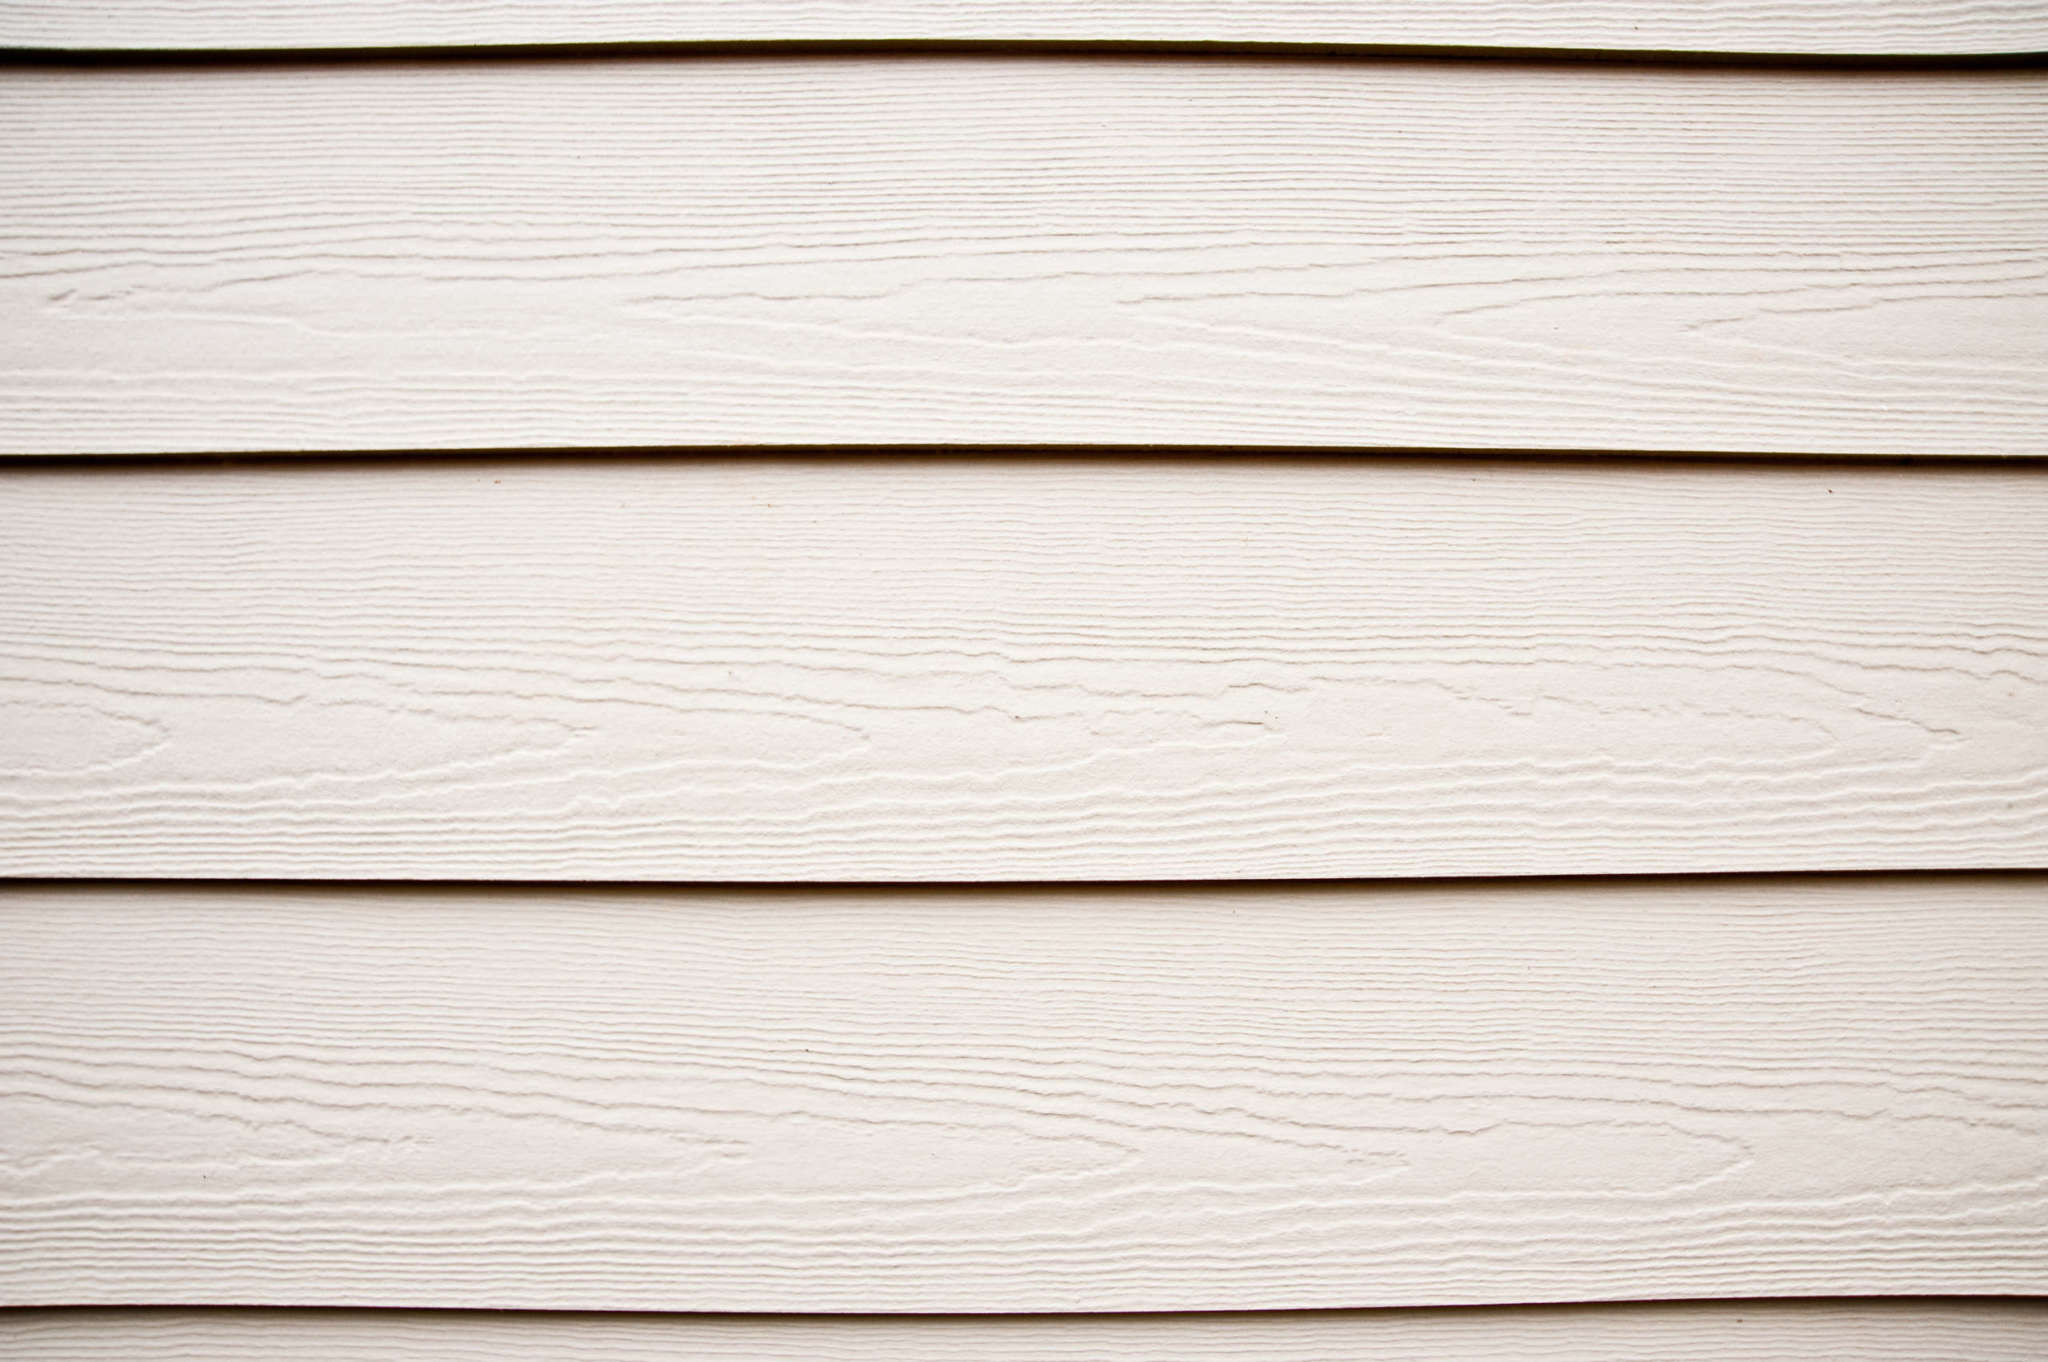 Close up of house siding to illustrate House Siding Cleaner: Make The Most Of Your New-Look Home!